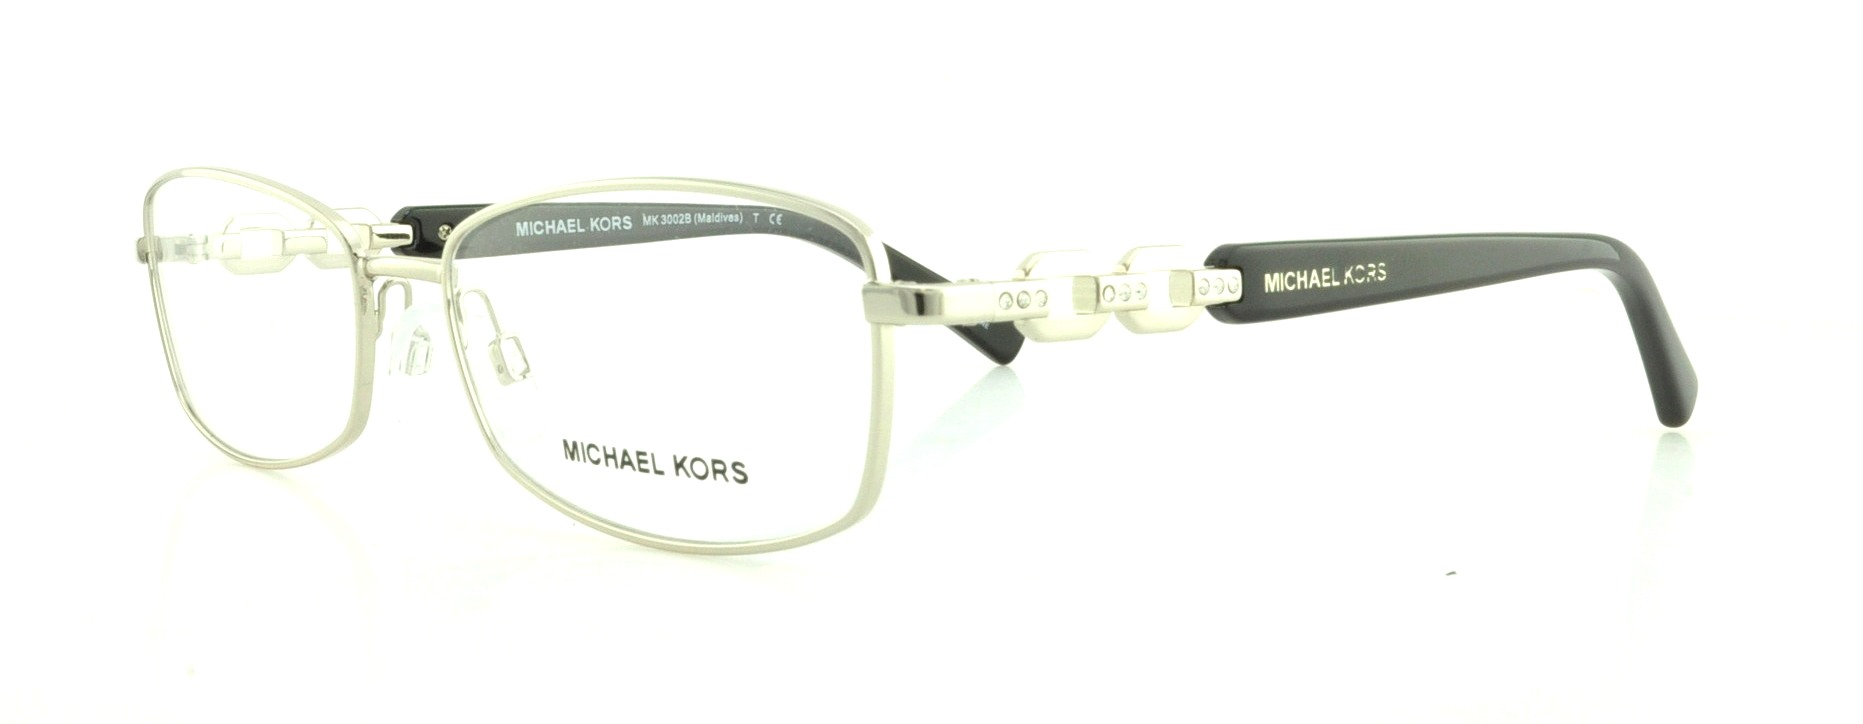 Picture of Michael Kors MK3002B